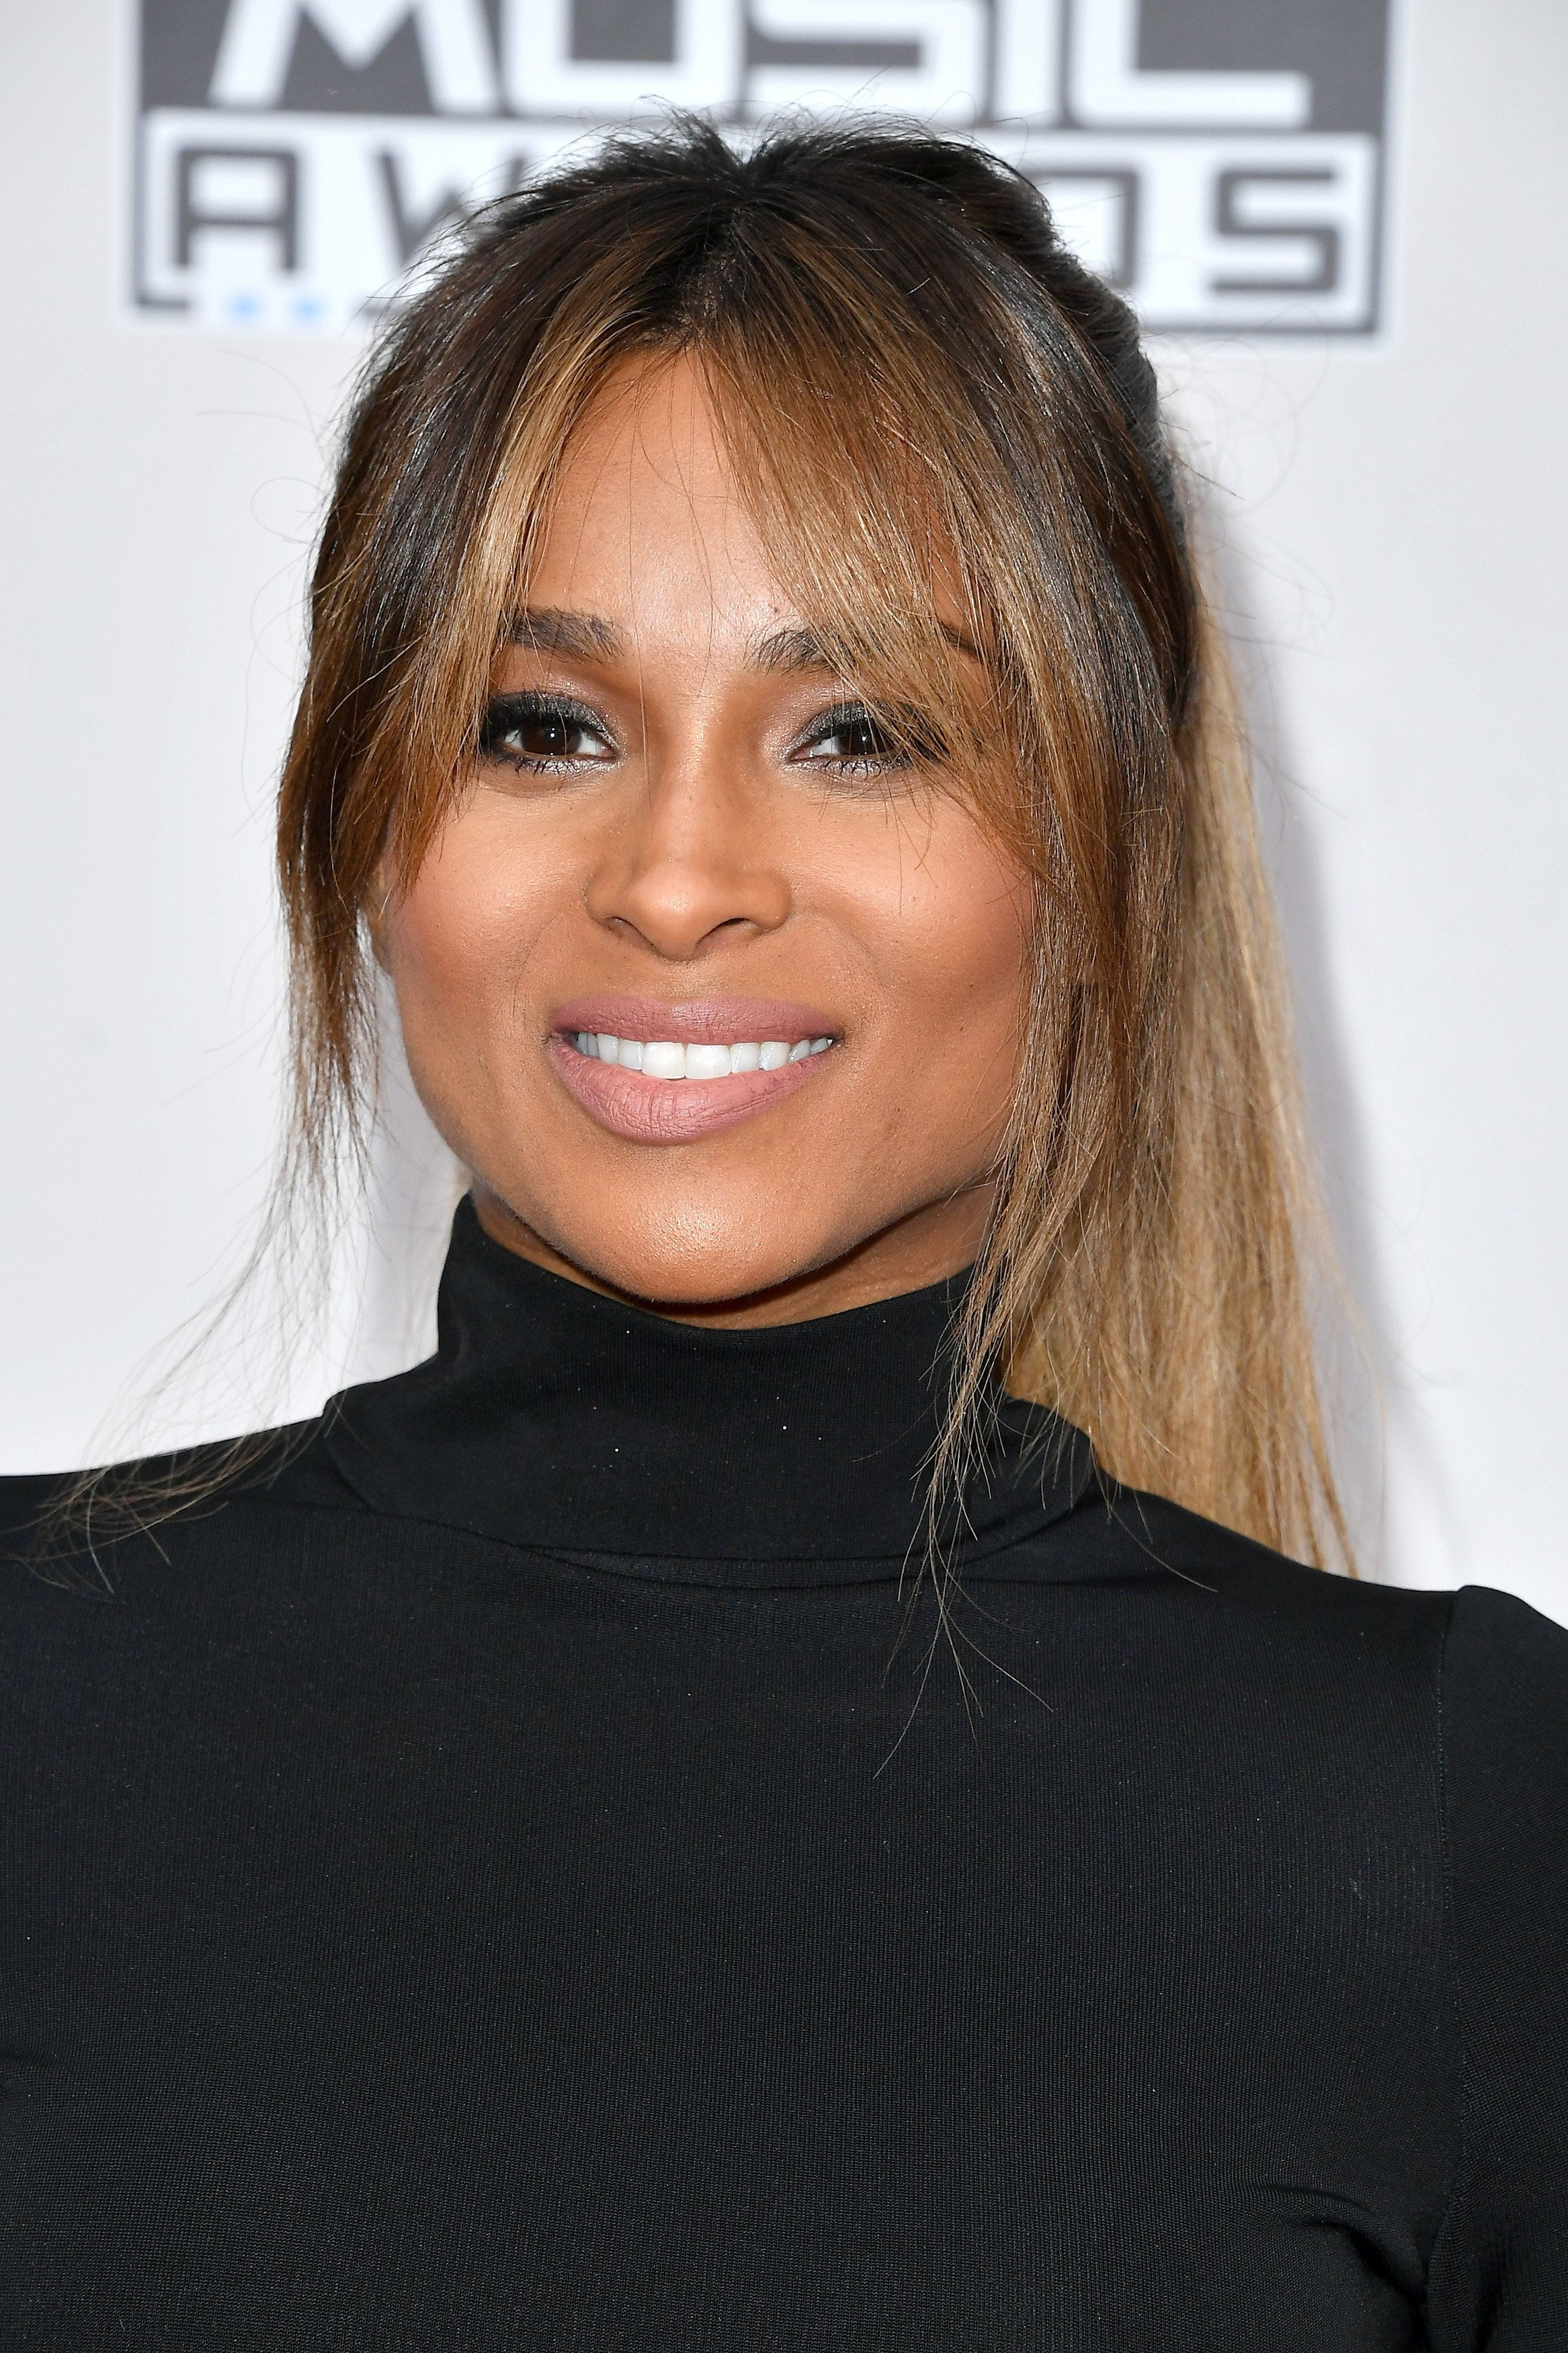 LOS ANGELES, CA - NOVEMBER 20:  Recording artist Ciara attends the 2016 American Music Awards at Microsoft Theater on November 20, 2016 in Los Angeles, California.  (Photo by Steve Granitz/WireImage)